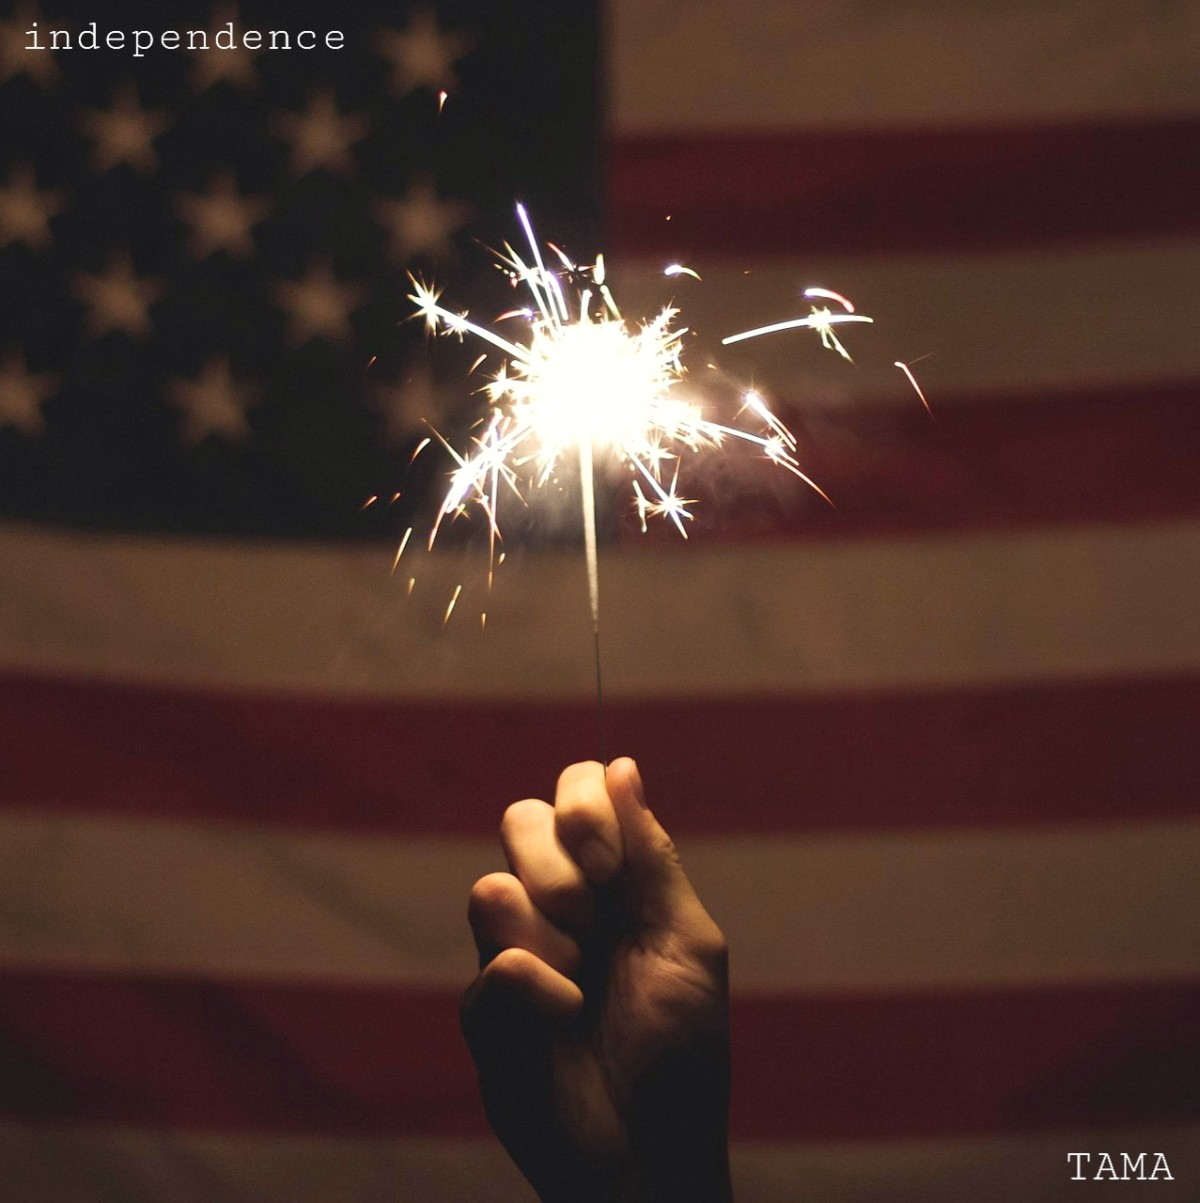 Independence Day in United States